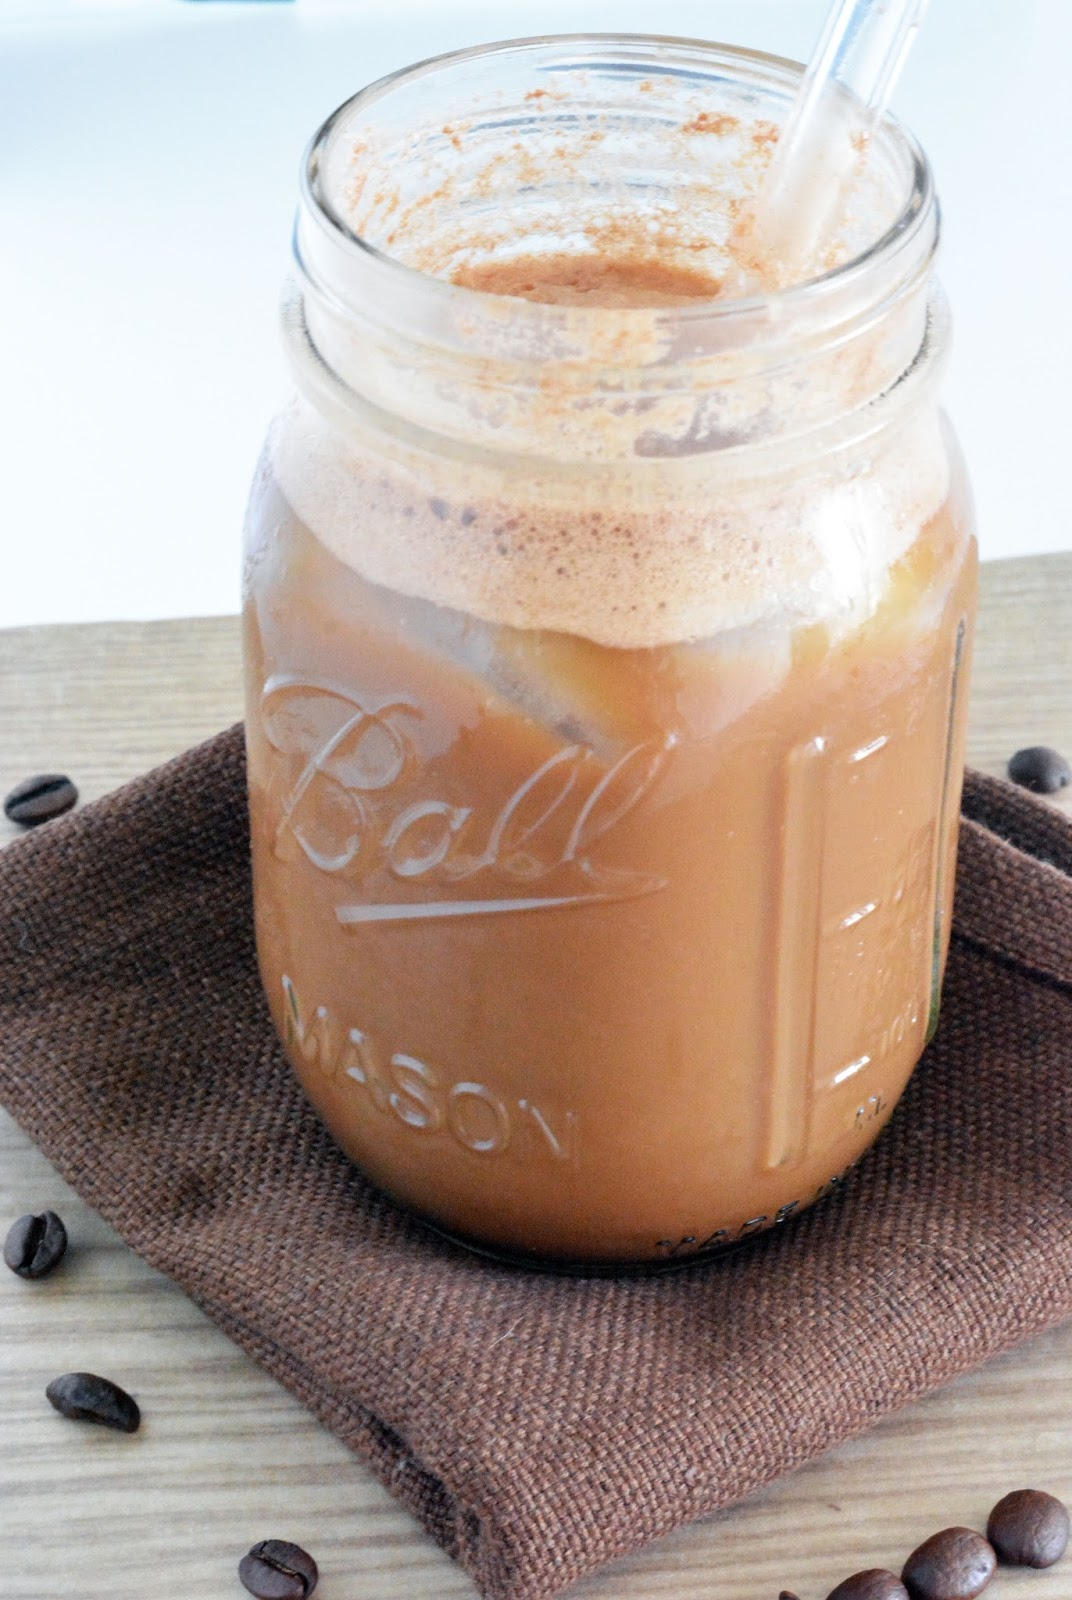 Get this delicious recipe for Nutella iced coffee!